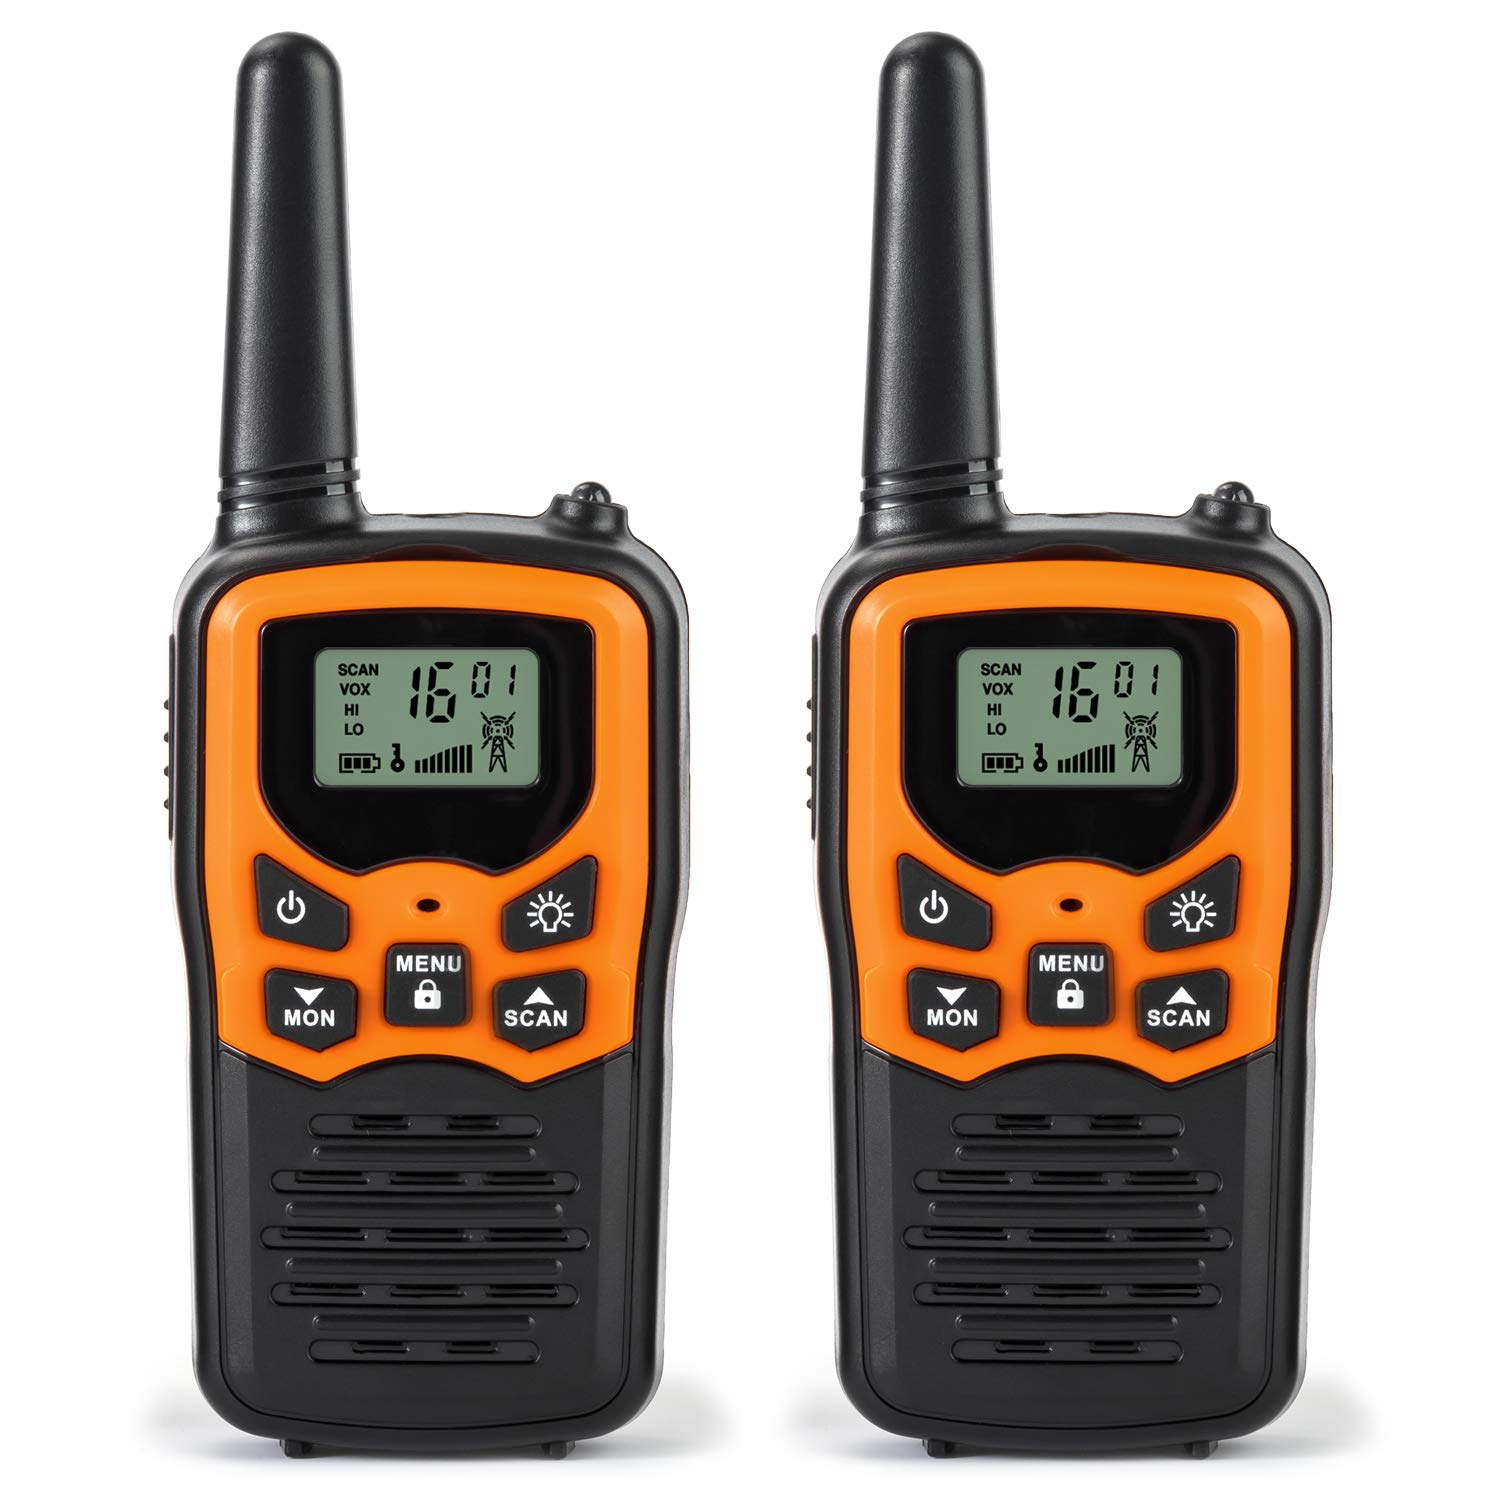 Rivins RV-7 Walkie Talkies for Kids Long Range 2 Pack 2-Way Radios Up to 5 Miles Range in Open Field 22 Channel FRS/GMRS Kids Walkie Talkies UHF Handheld Walky Talky (Black/Orange) by Rivins